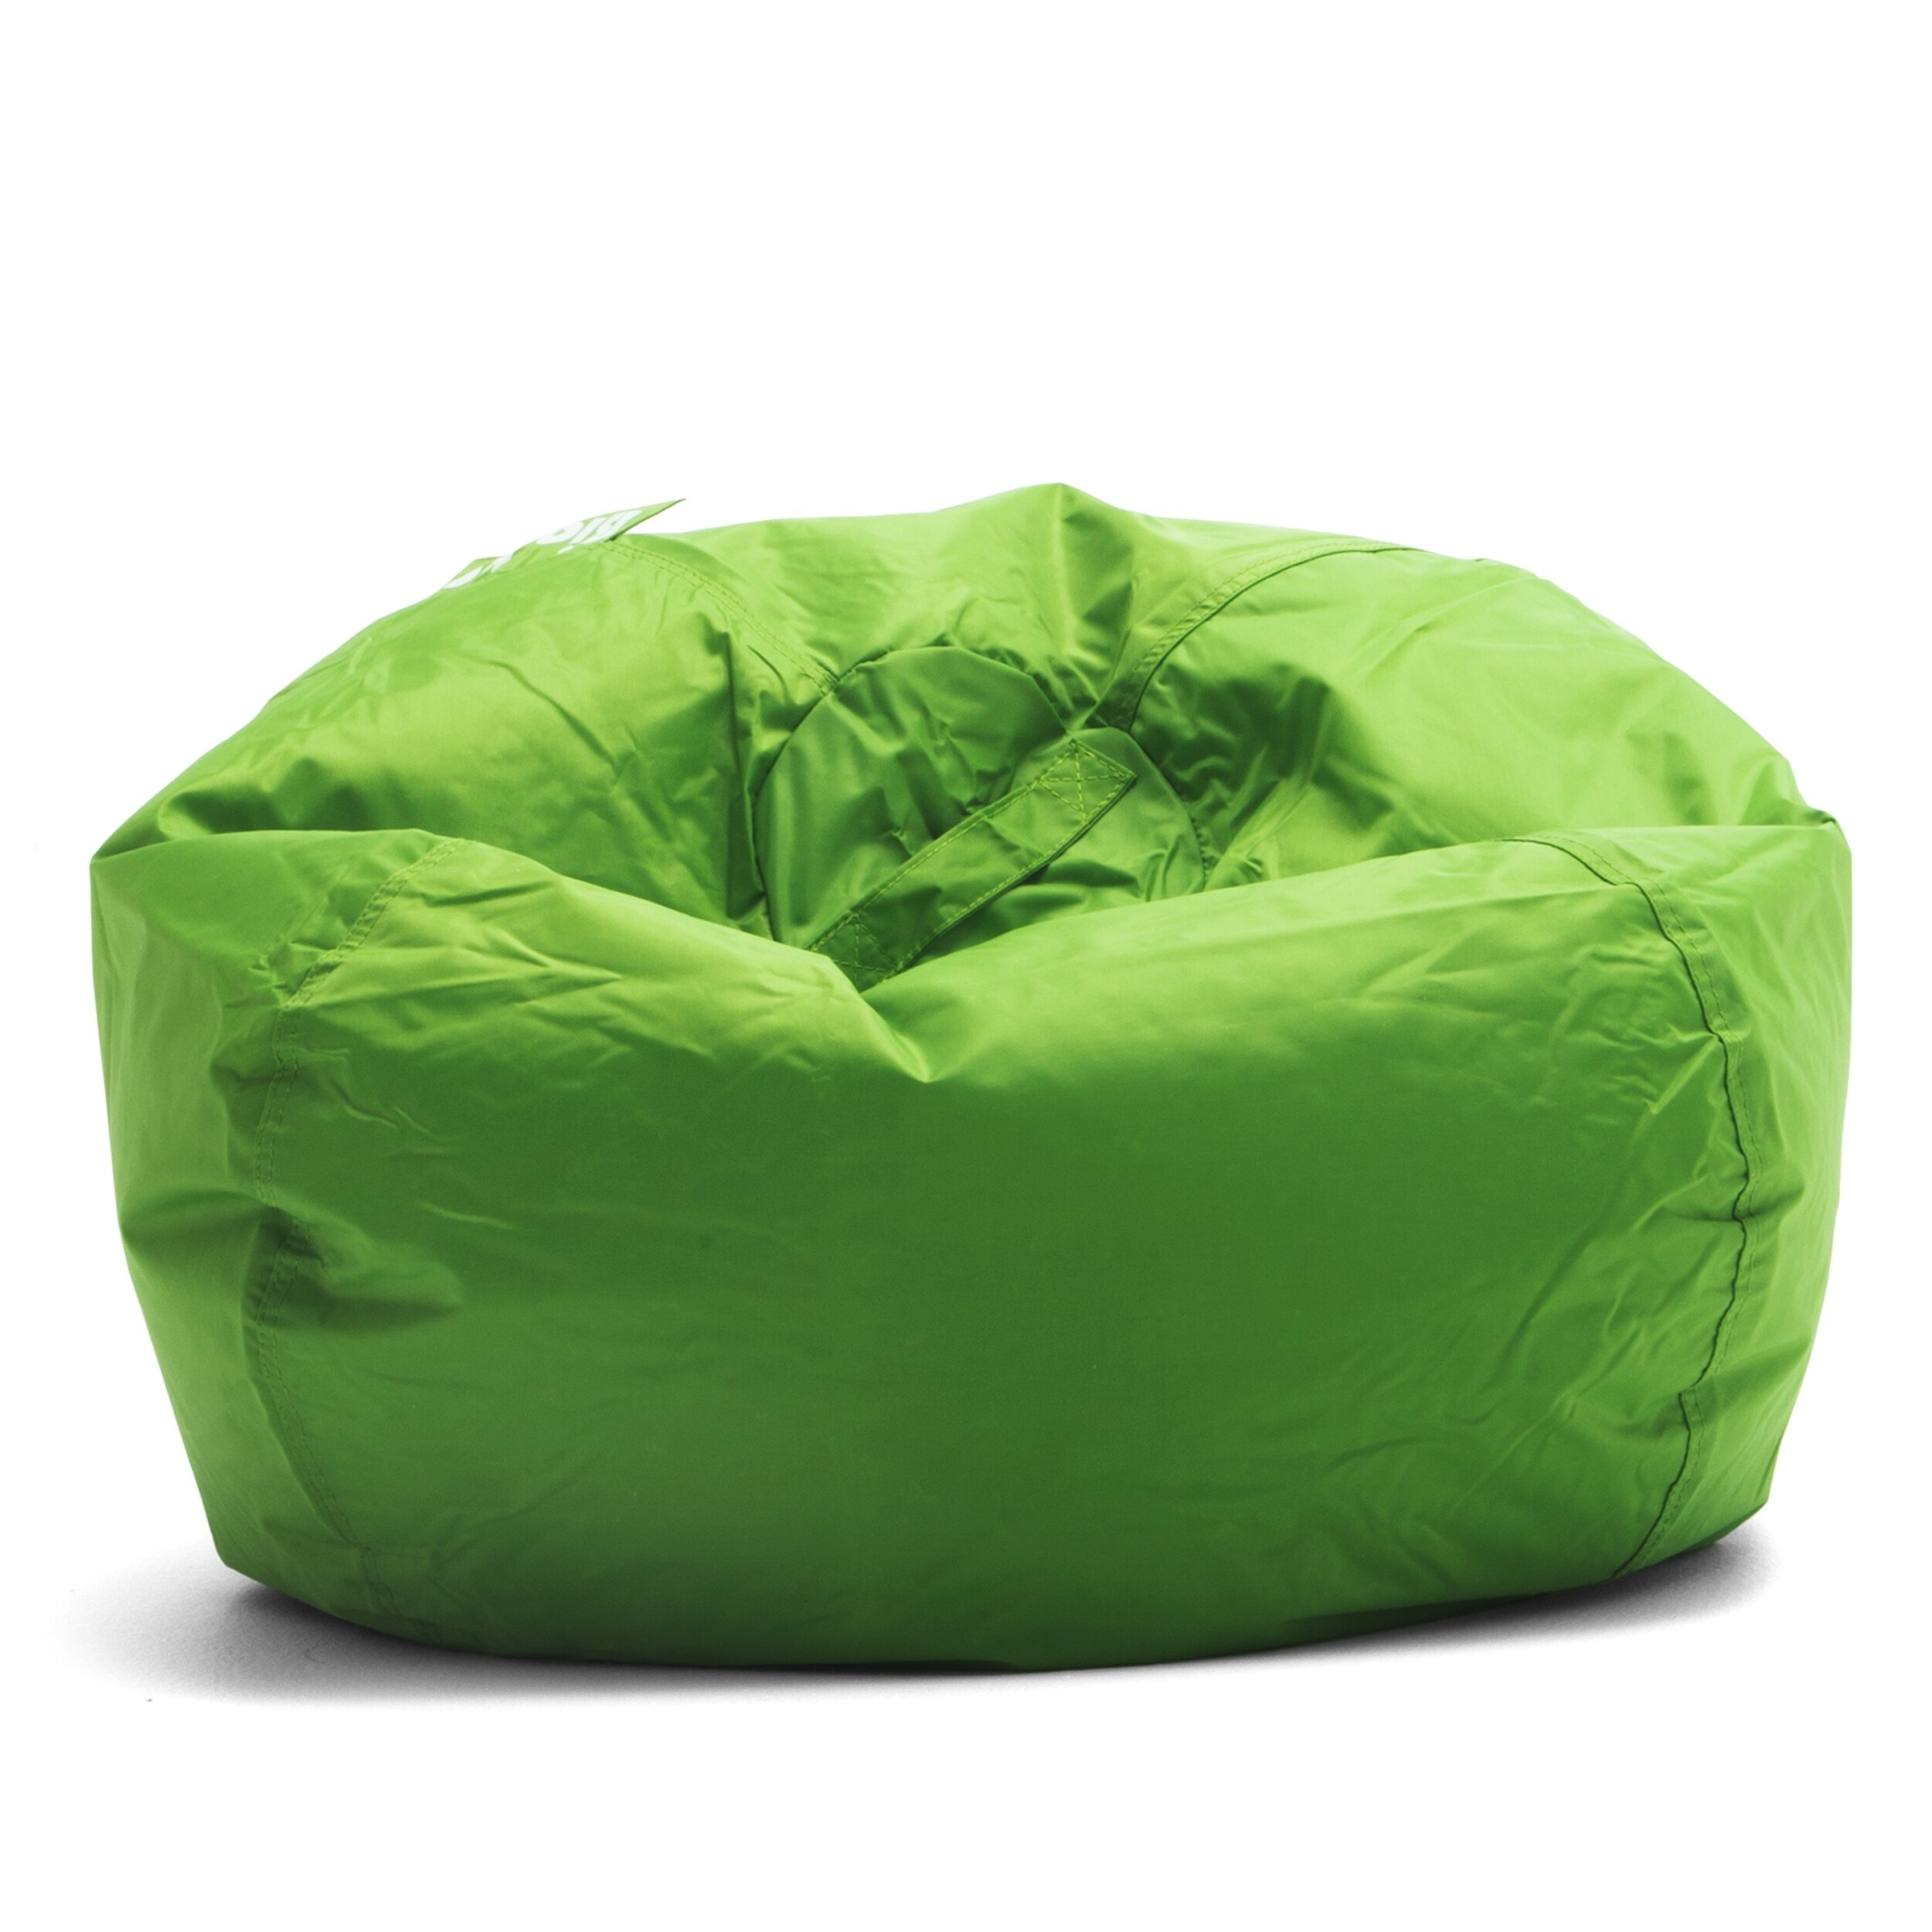 Shop Big Joe Kidsu0027 Classic 98 Bean Bag Chair - Free Shipping On Orders Over $45 - Overstock - 21213986  sc 1 st  Overstock.com & Shop Big Joe Kidsu0027 Classic 98 Bean Bag Chair - Free Shipping On ...